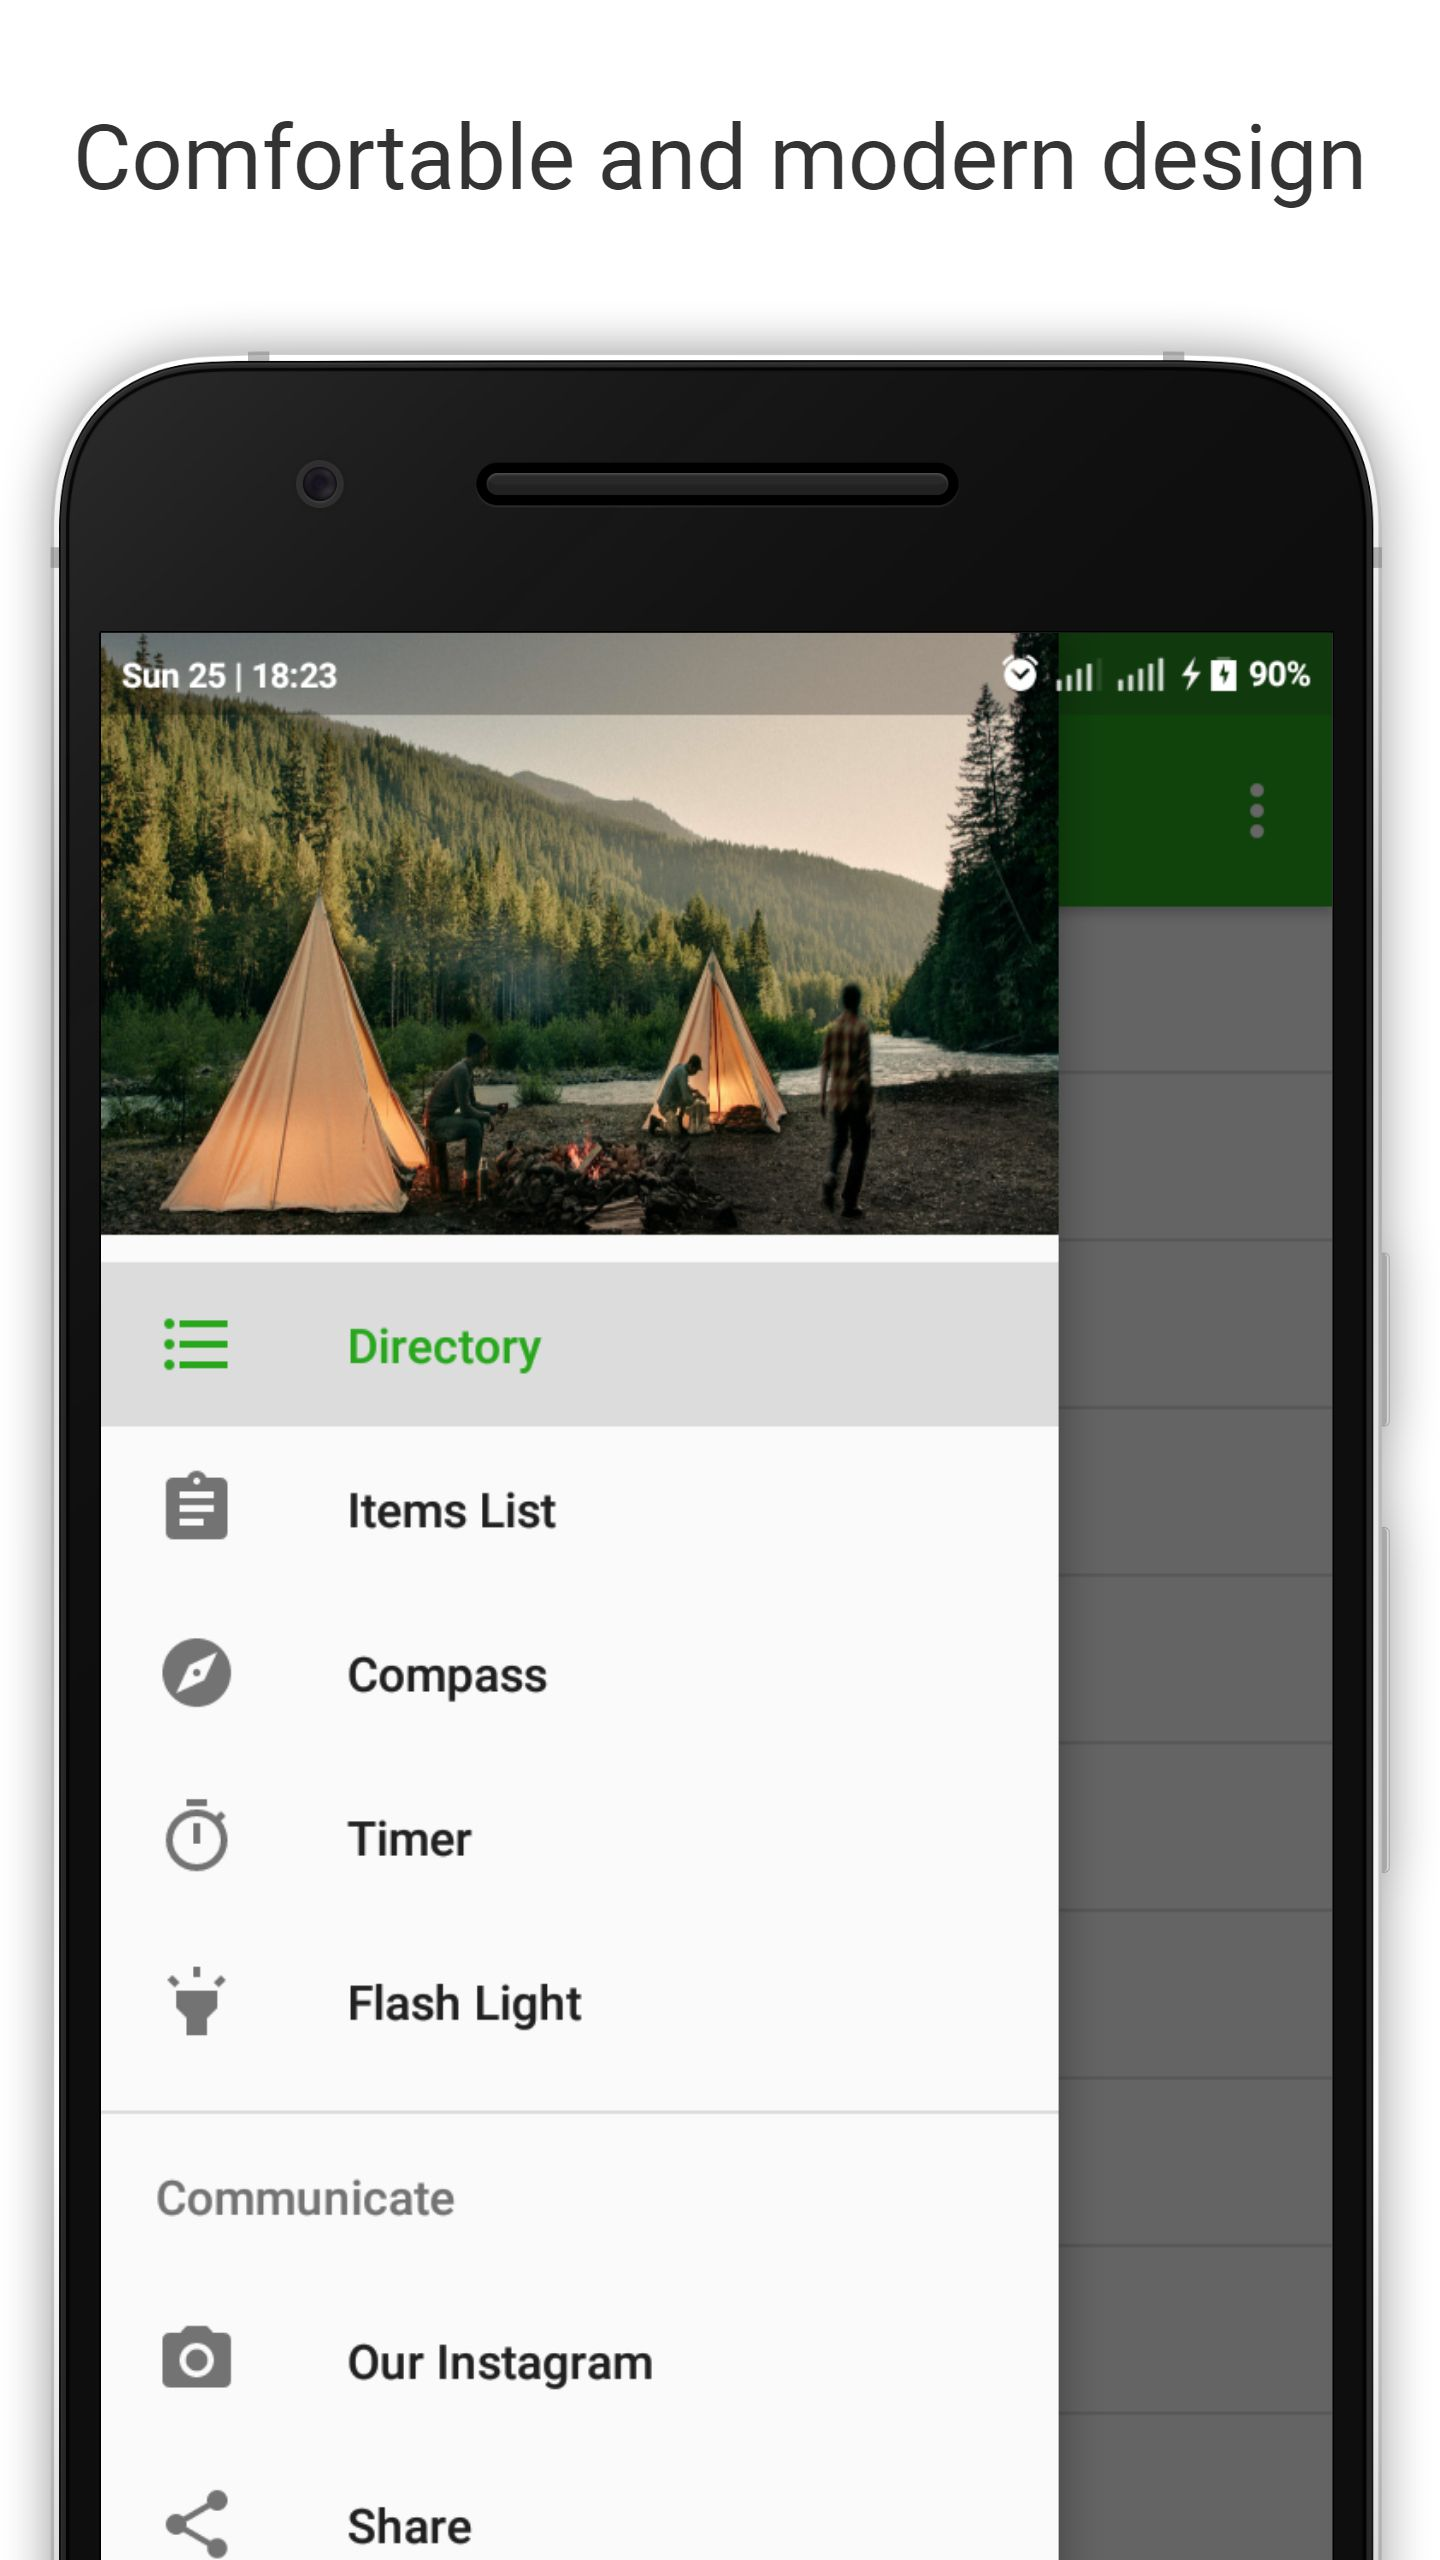 Tools For Tourism - Android Template Screenshot 1